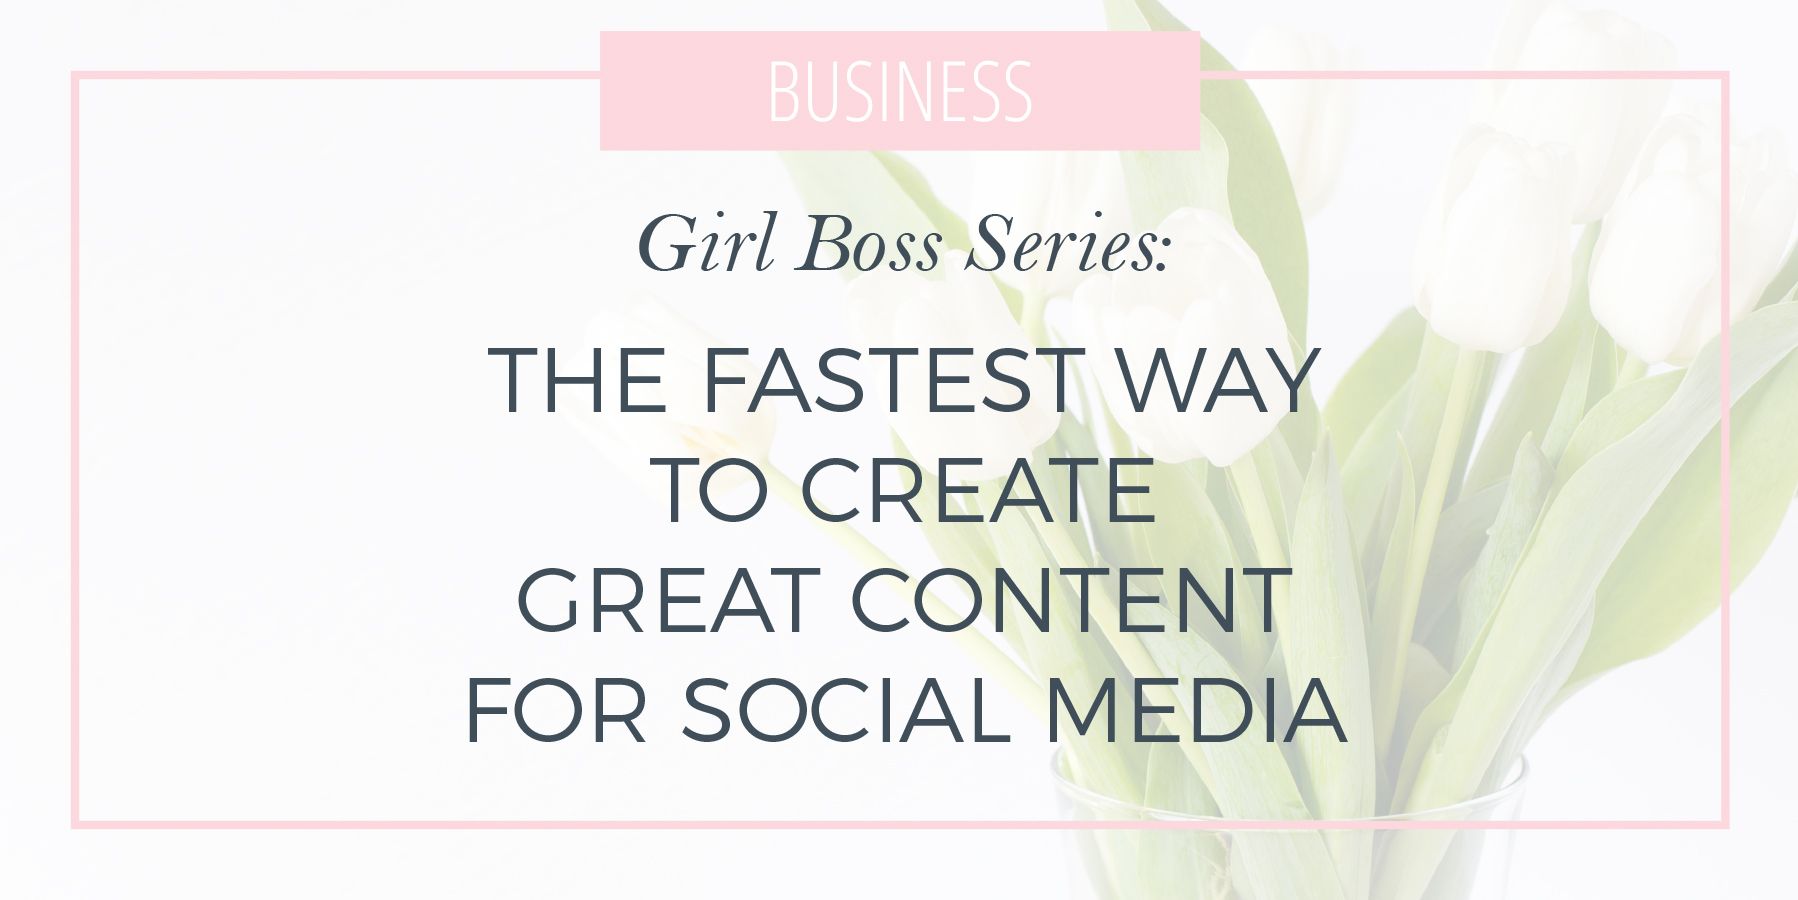 The Fastest Way to Create Great Content for Social Media